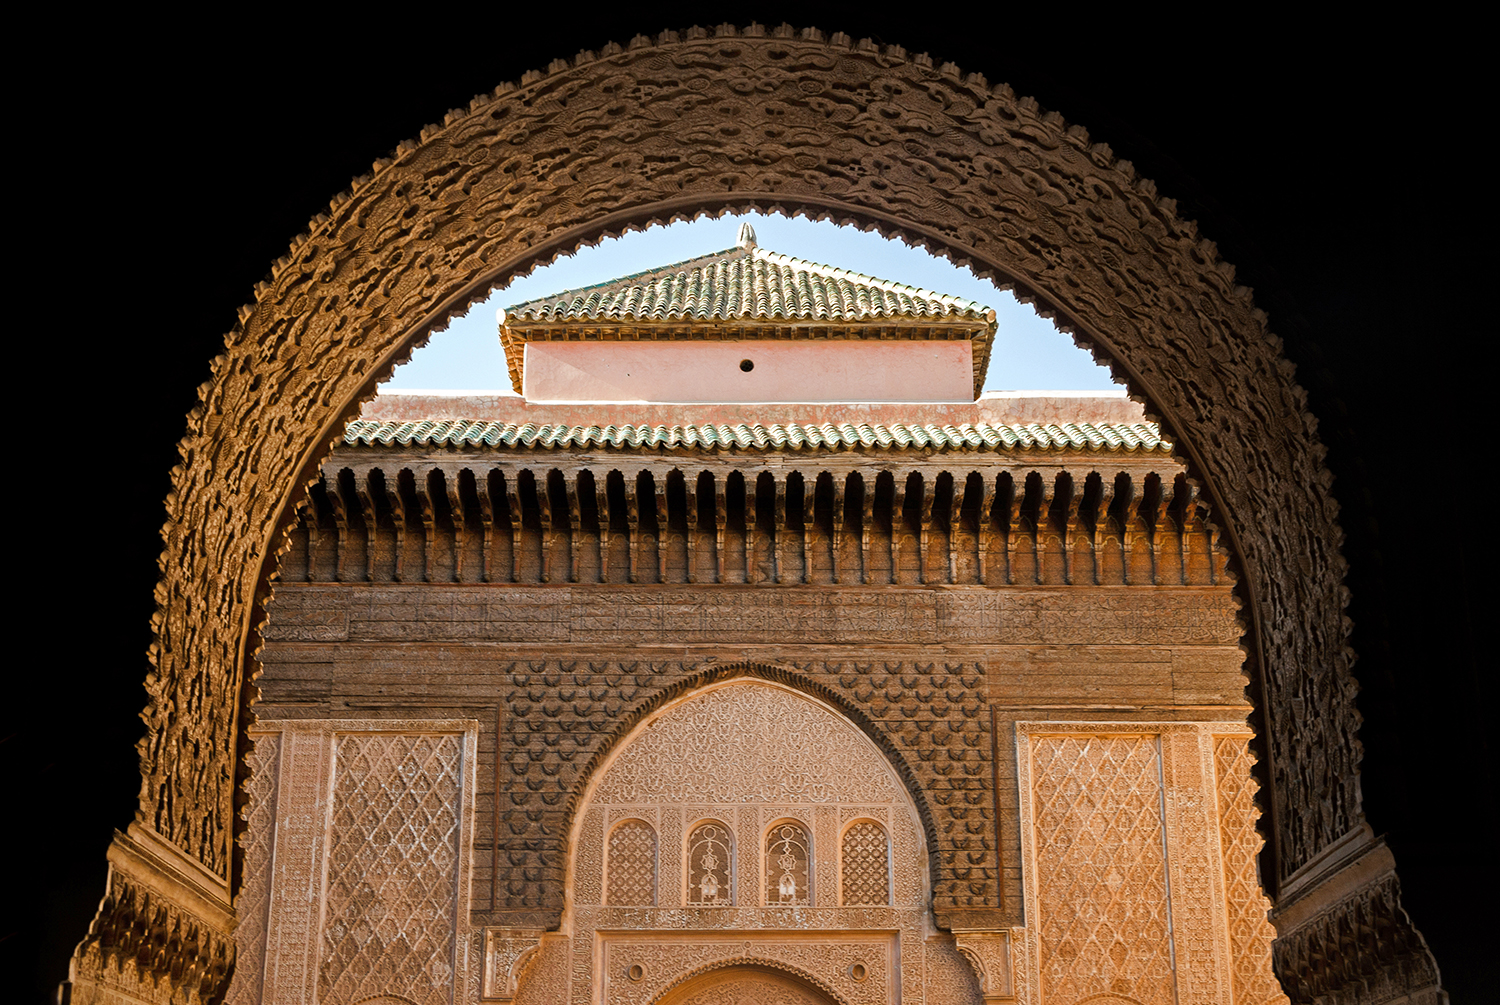 architecture in Ben Youssef Madrasa